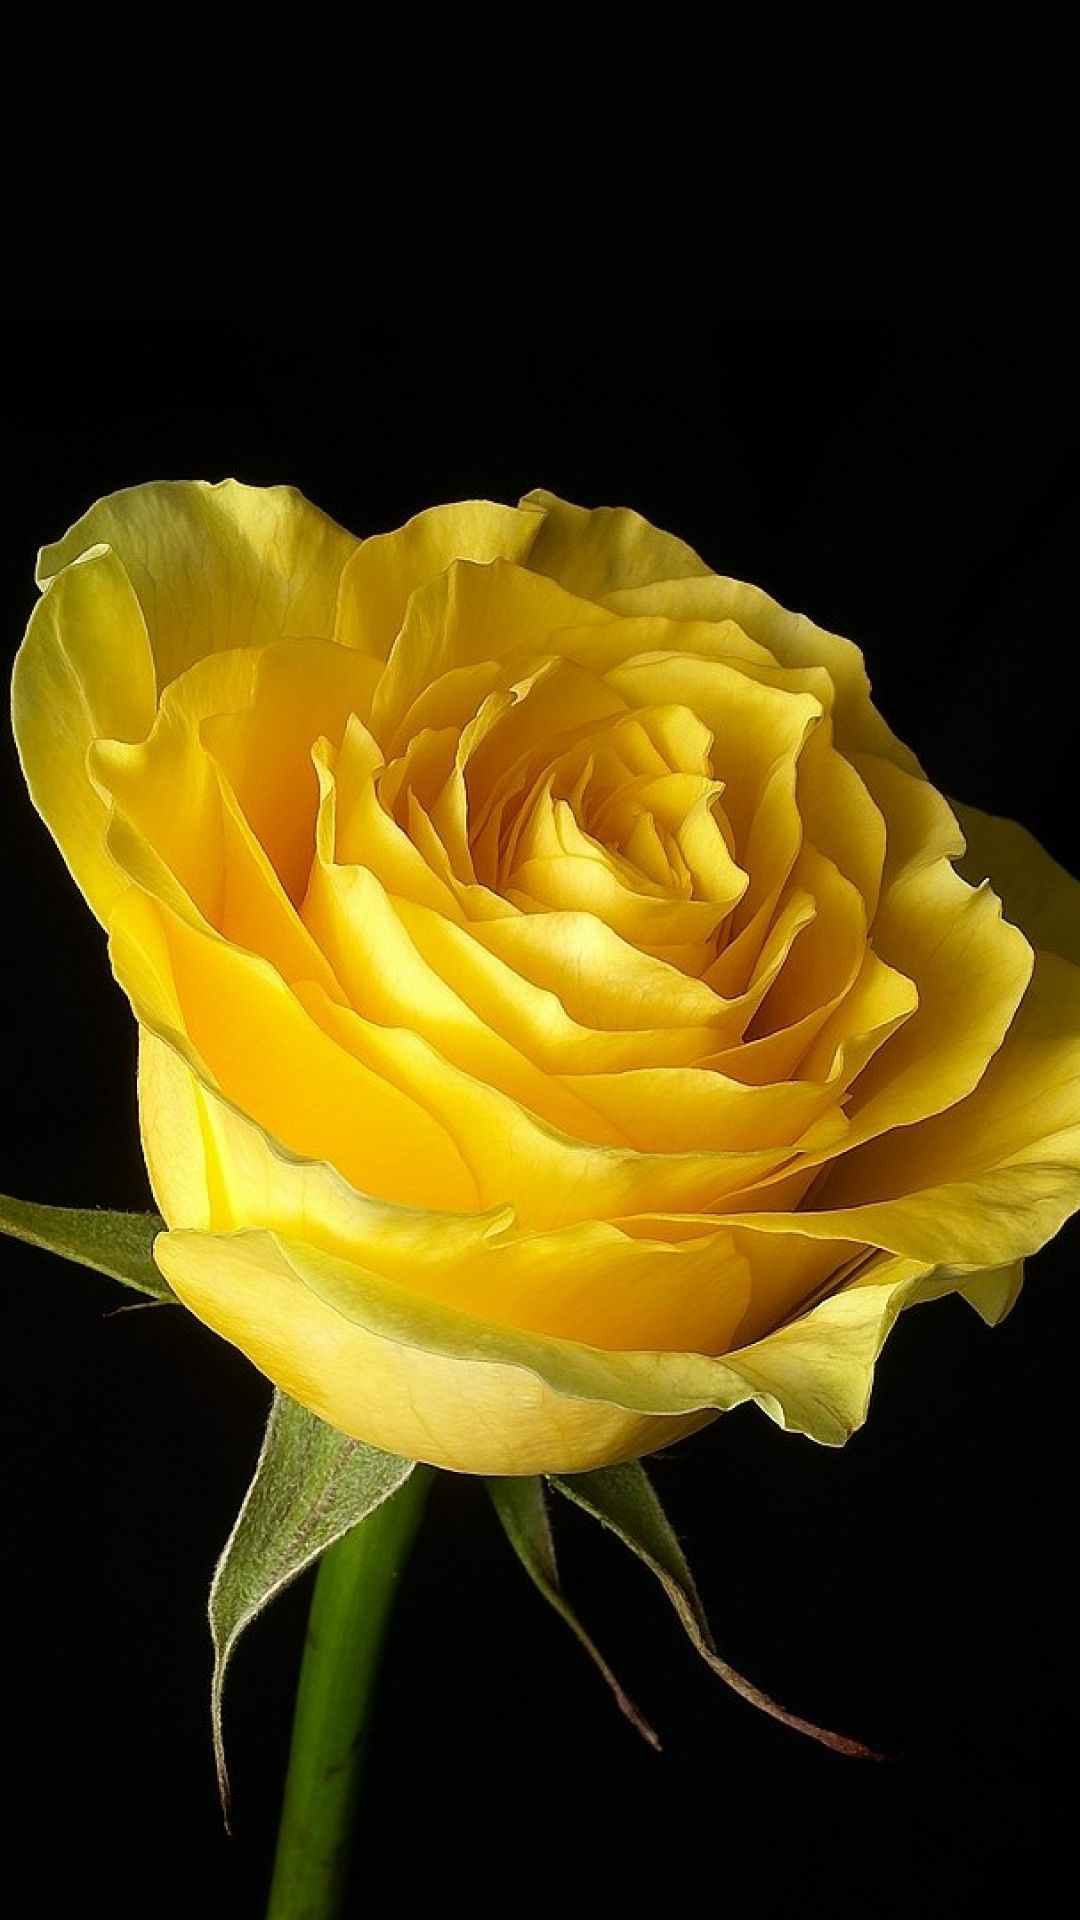 Download Wallpaper 1080x1920 Rose Flower Yellow Bud Background Close Up Sony Xperia Z1 Zl Z Samsung Rose Flower Photos Yellow Rose Flower Yellow Roses